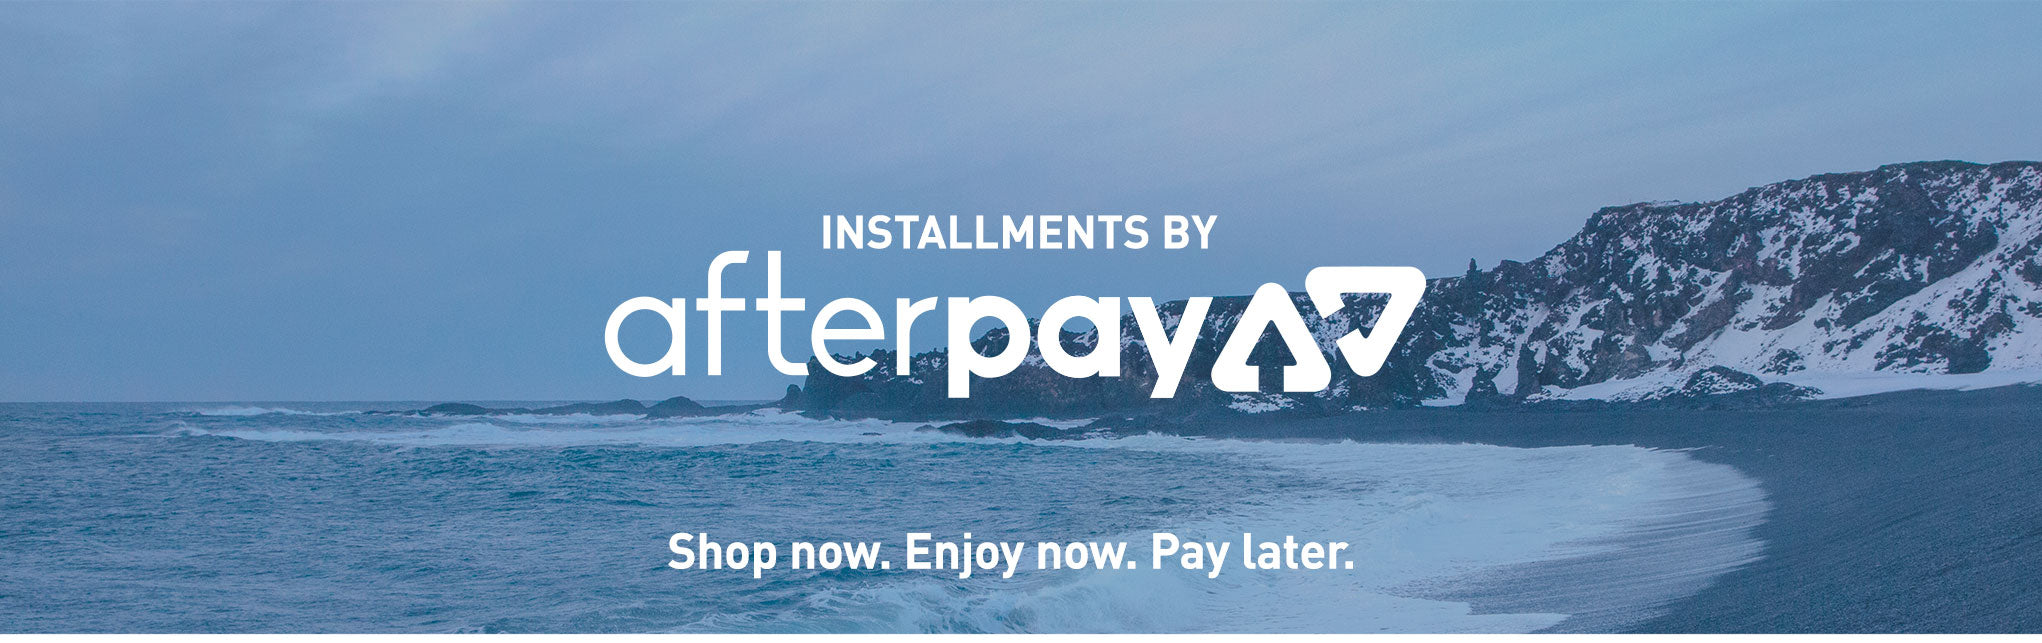 Introducing installments by Afterpay